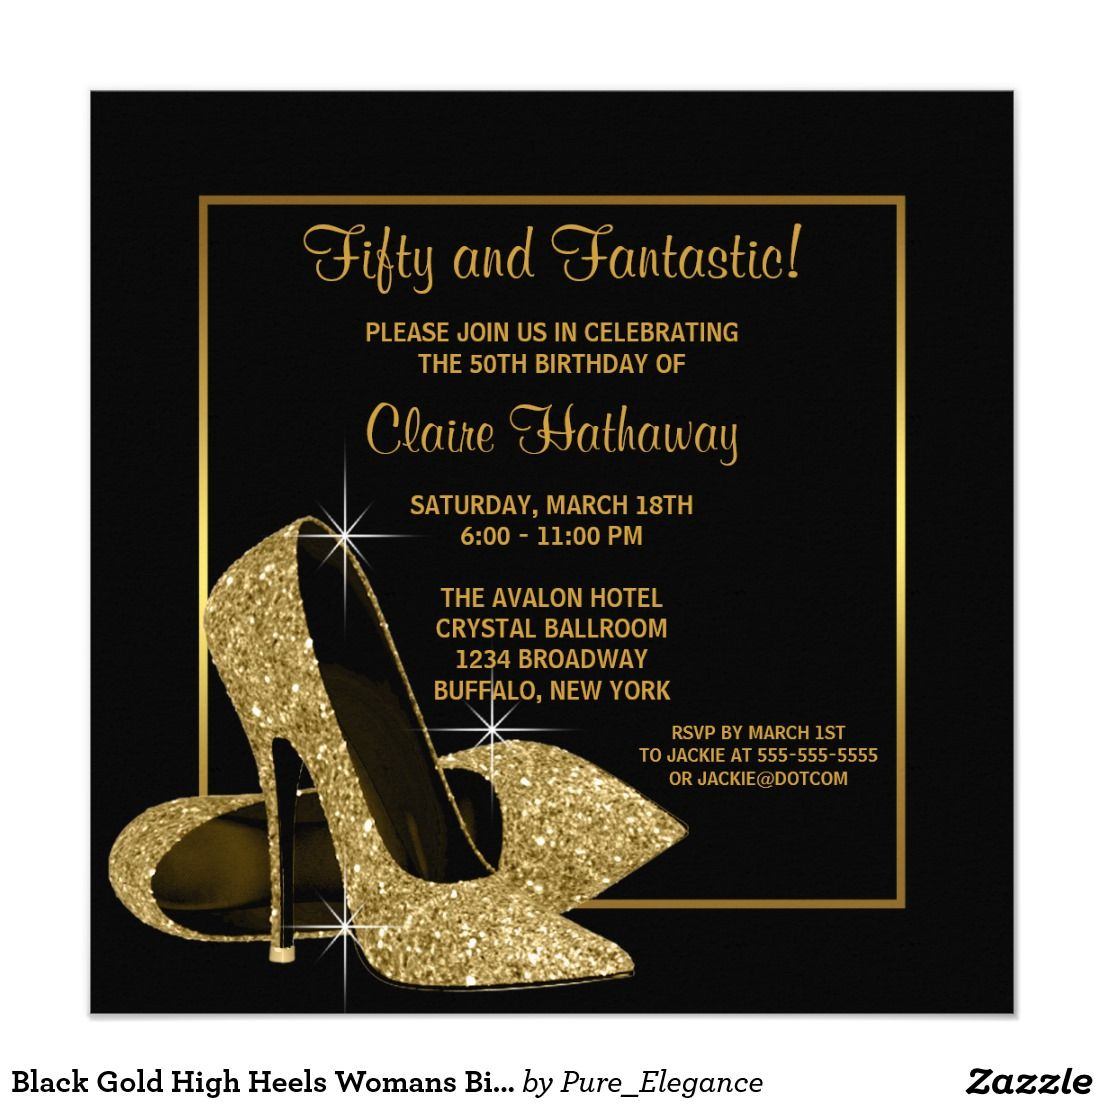 Black Gold High Heels Womans Birthday Party Invitation In 2018